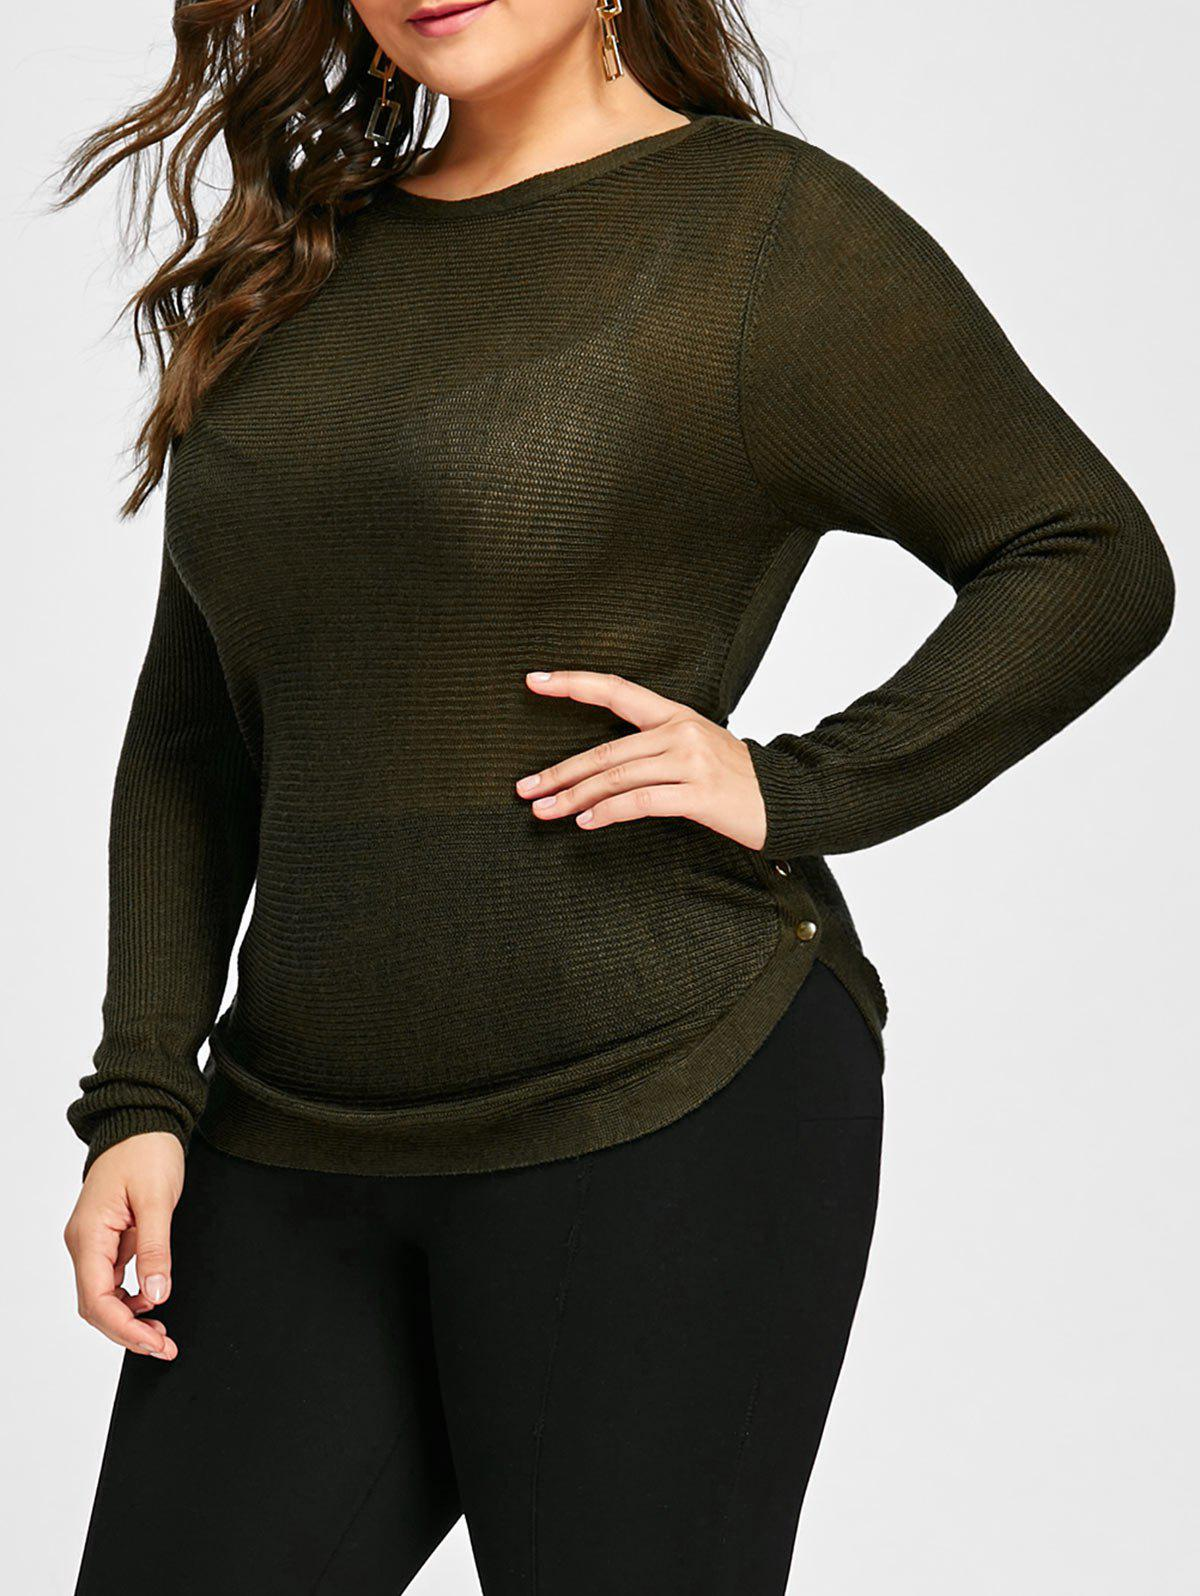 2018 Button Embellished Plus Size Sheer Sweater ARMY GREEN XL In ...